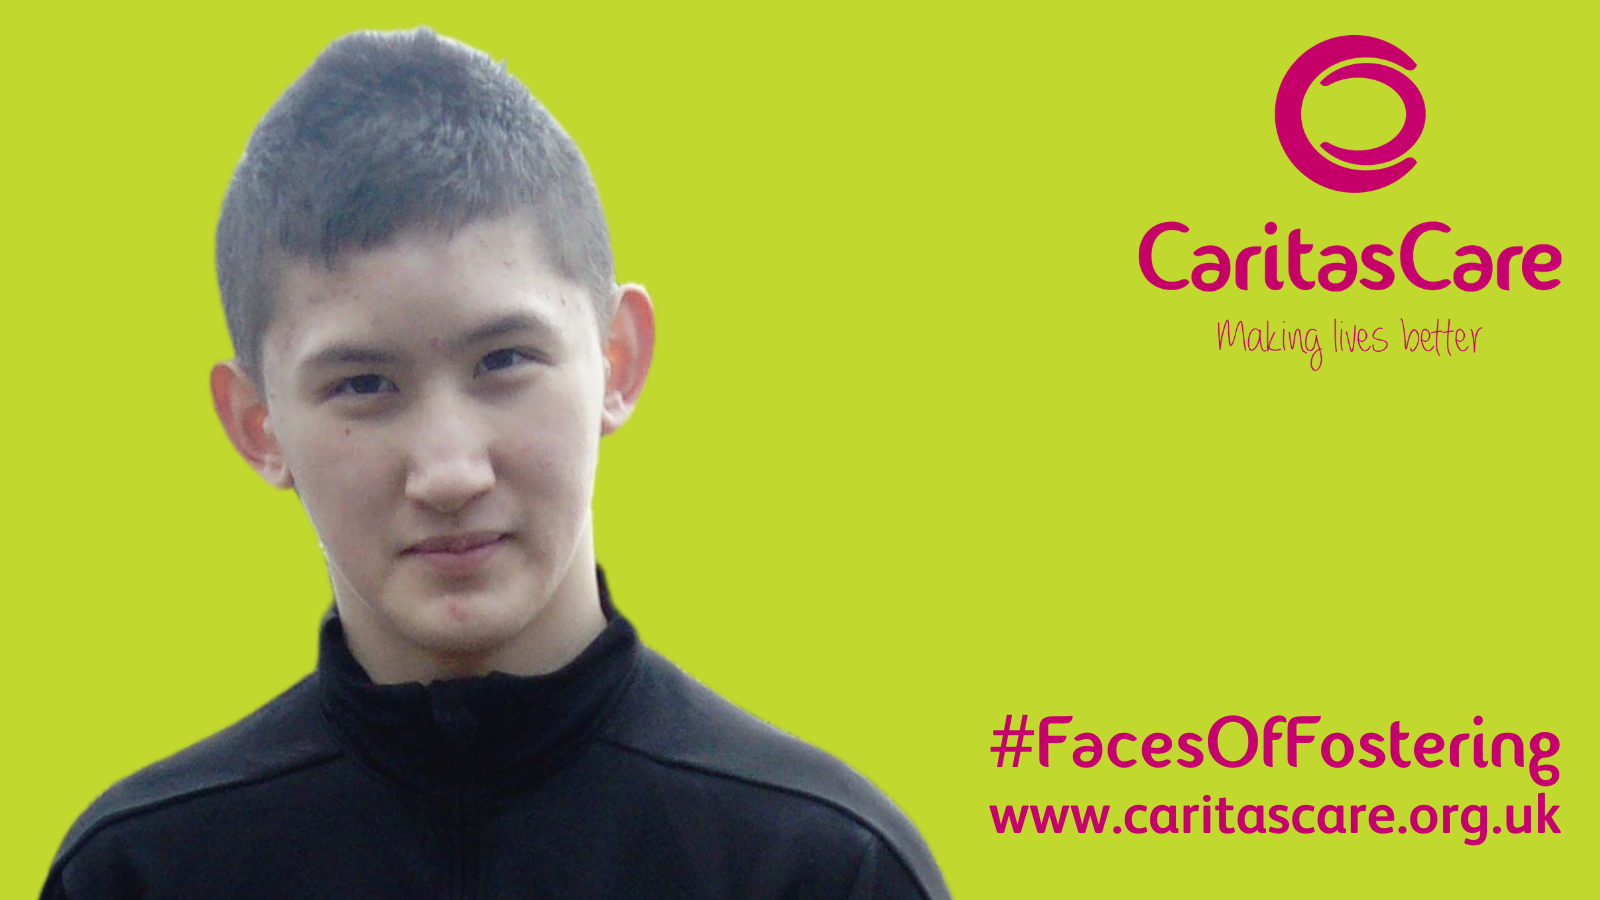 #FacesOfFostering - Byron and his journey in Foster Care (in his own words)